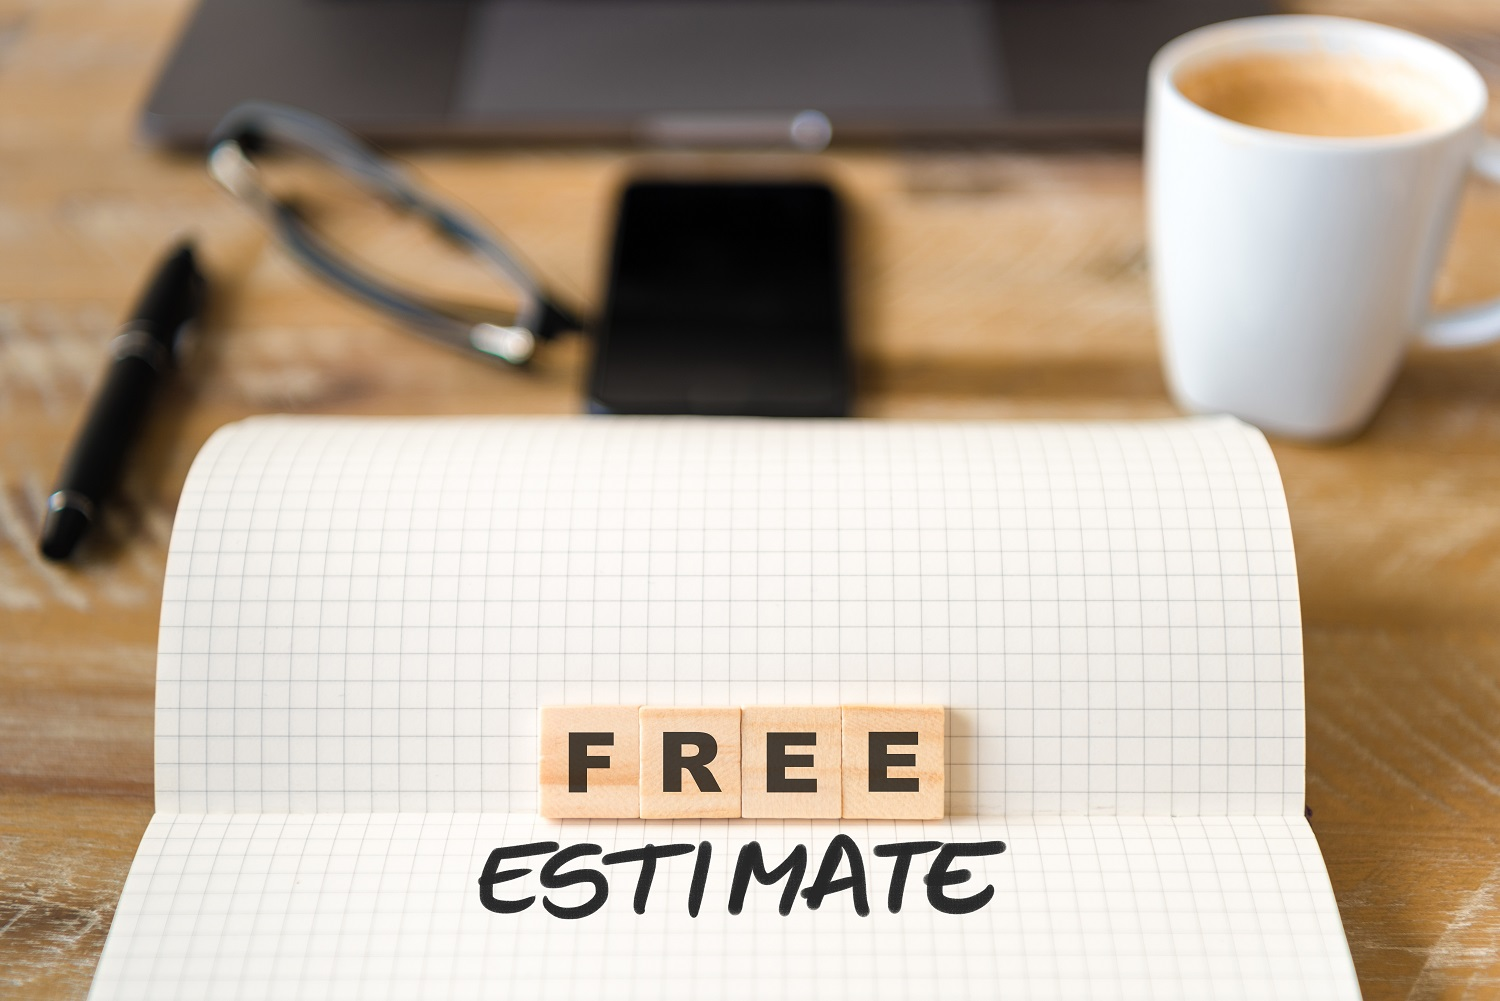 call us now - Feel free to give us a call or email us to schedule an appointment for a free estimate.